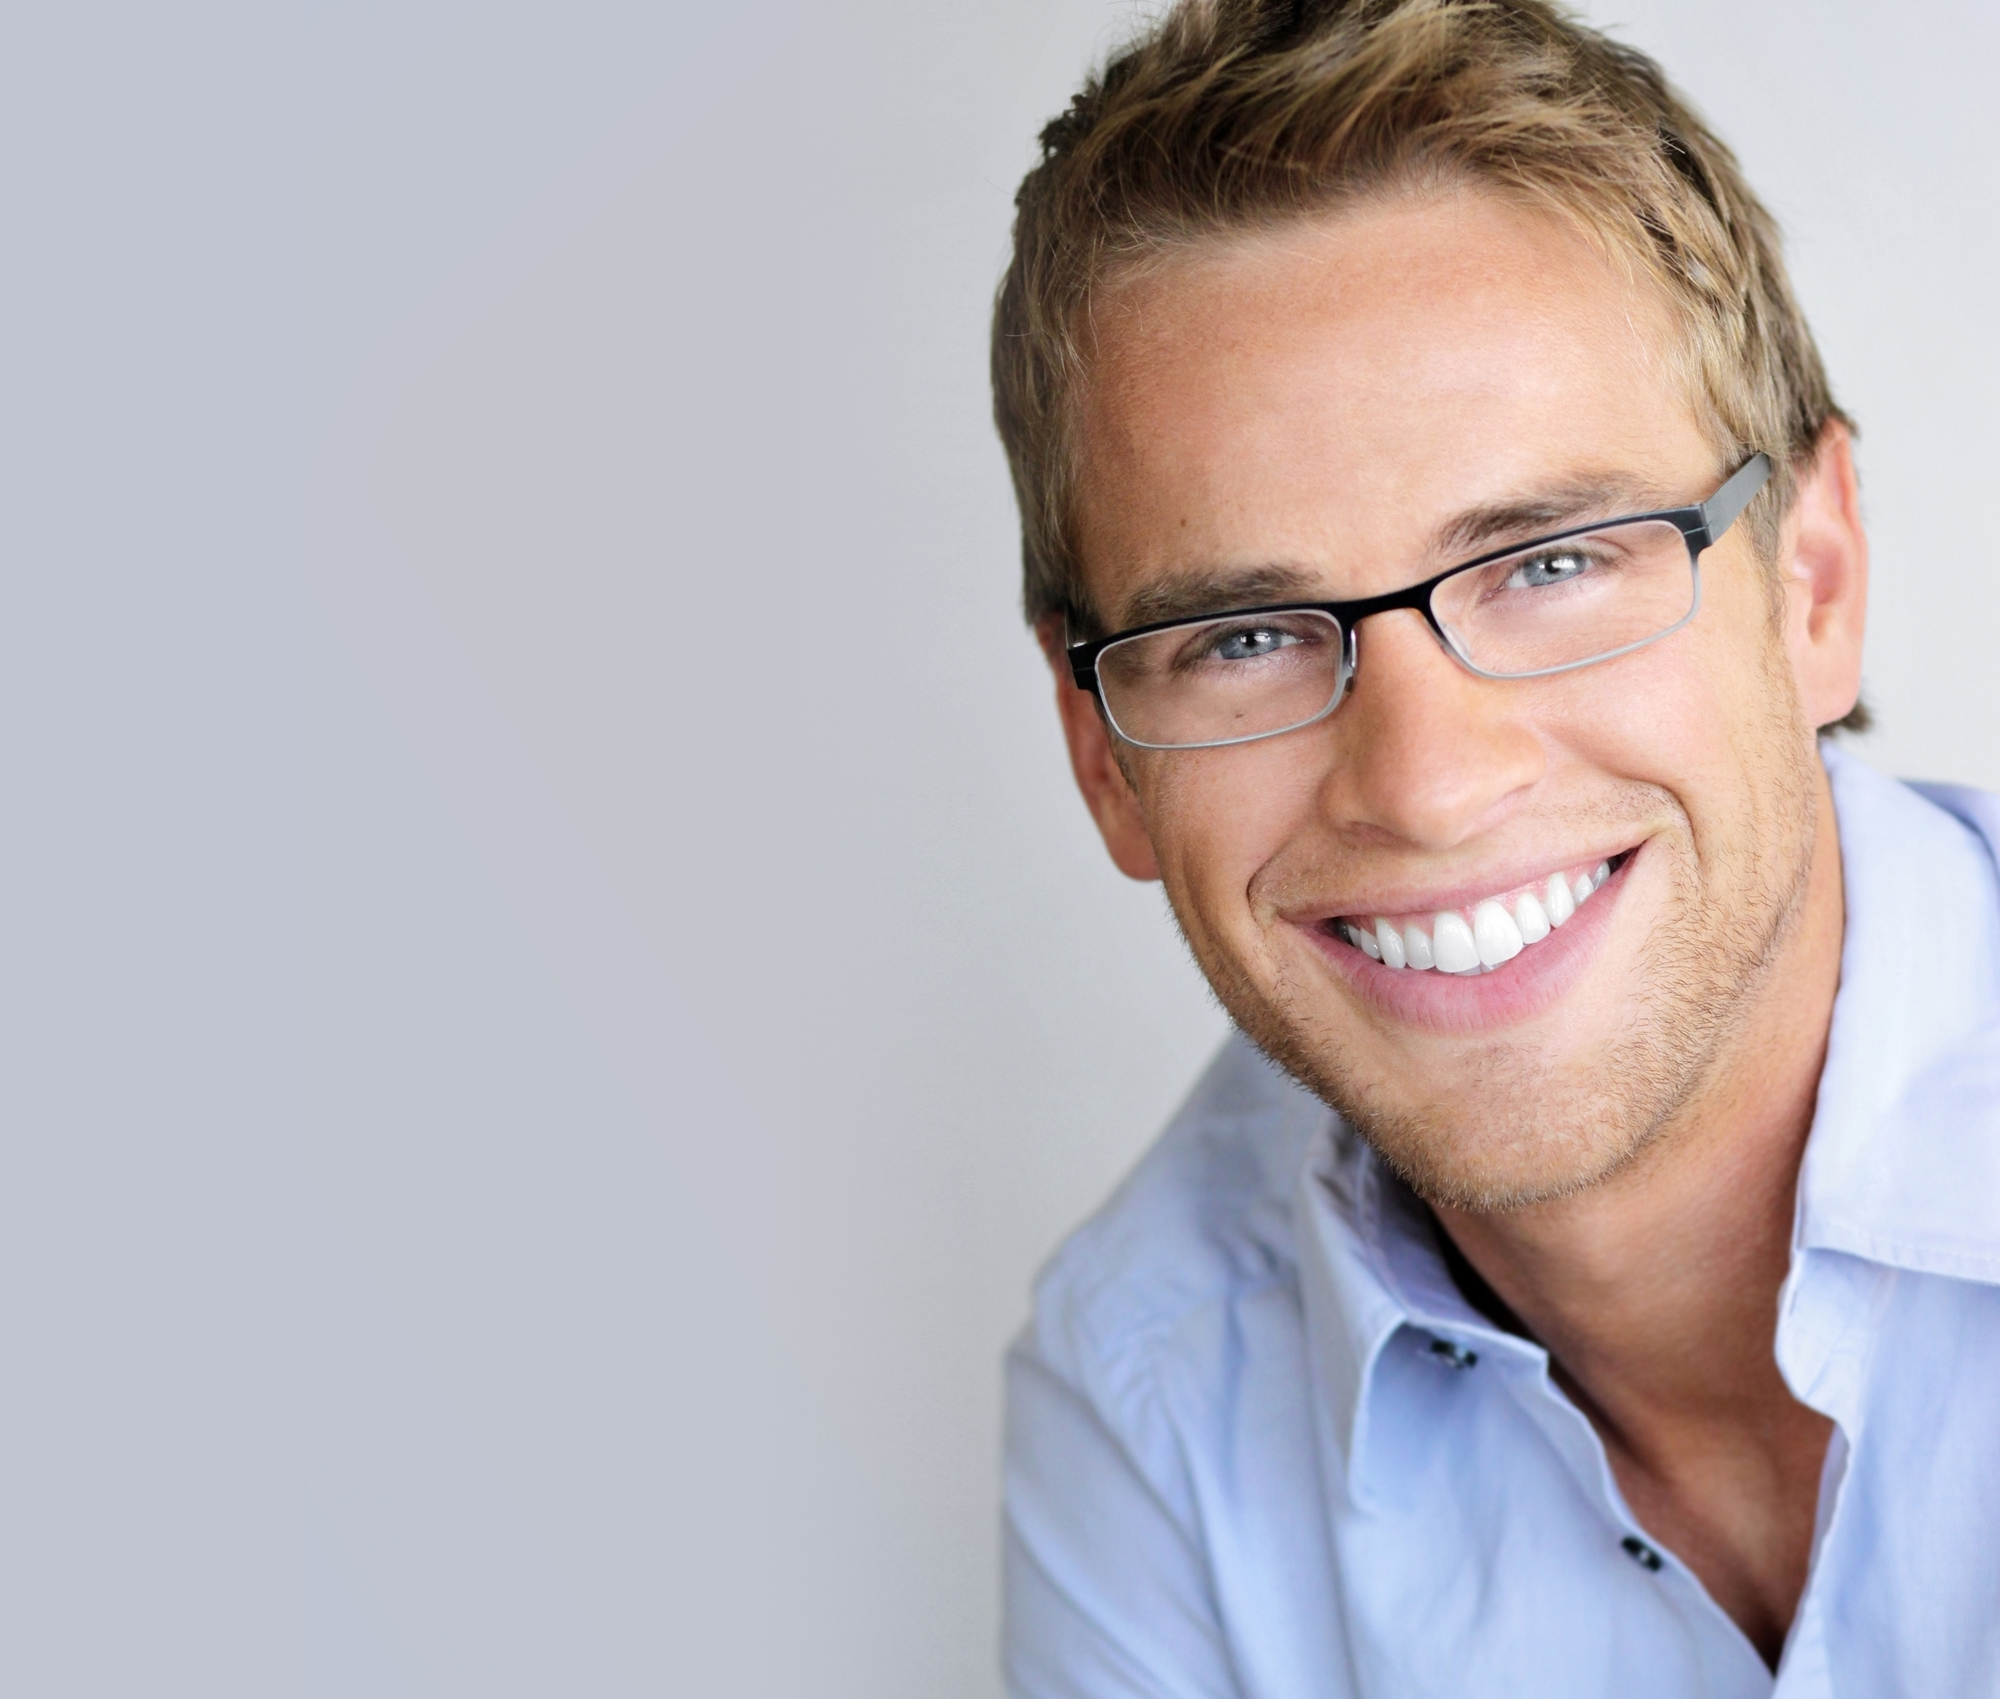 Where can I find the best Fort Lauderdale teeth whitening?